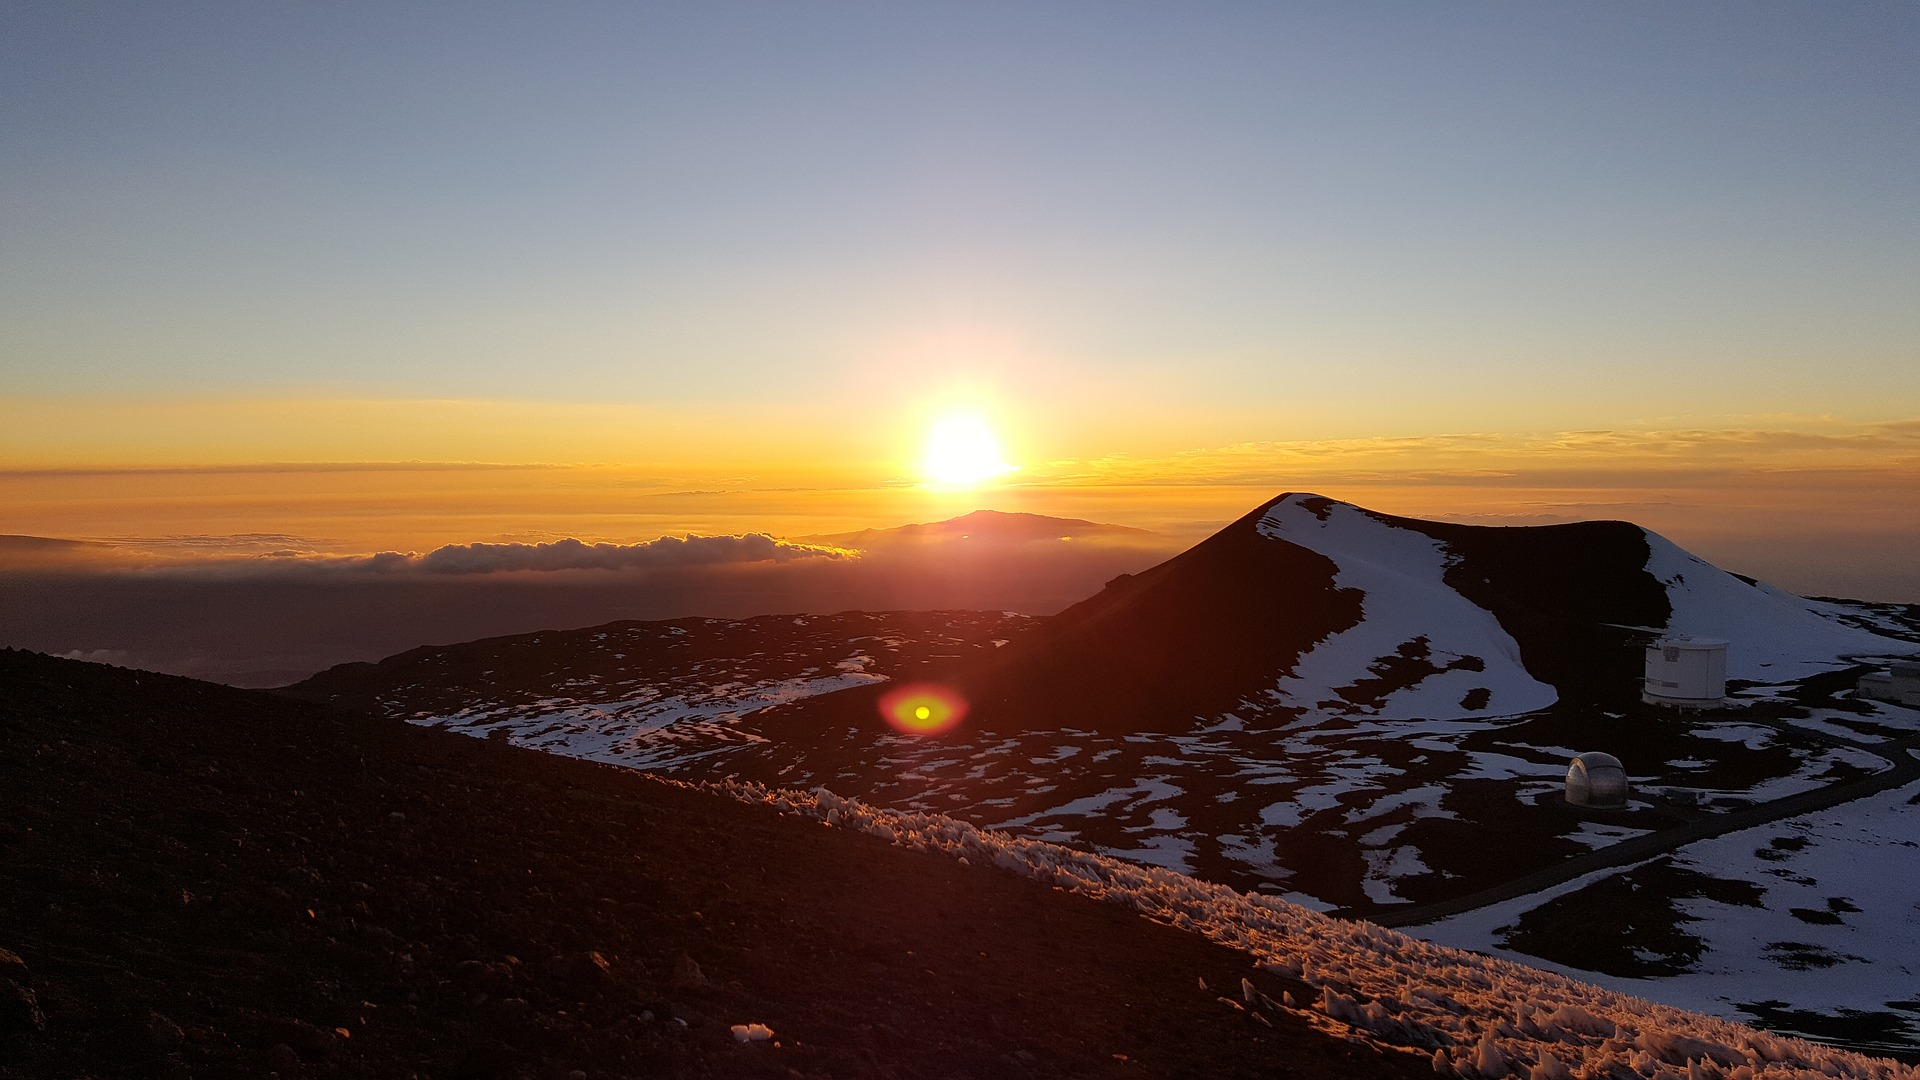 View of the sunset from the top of Mauna Kea, where the lava glow can be seen at night.